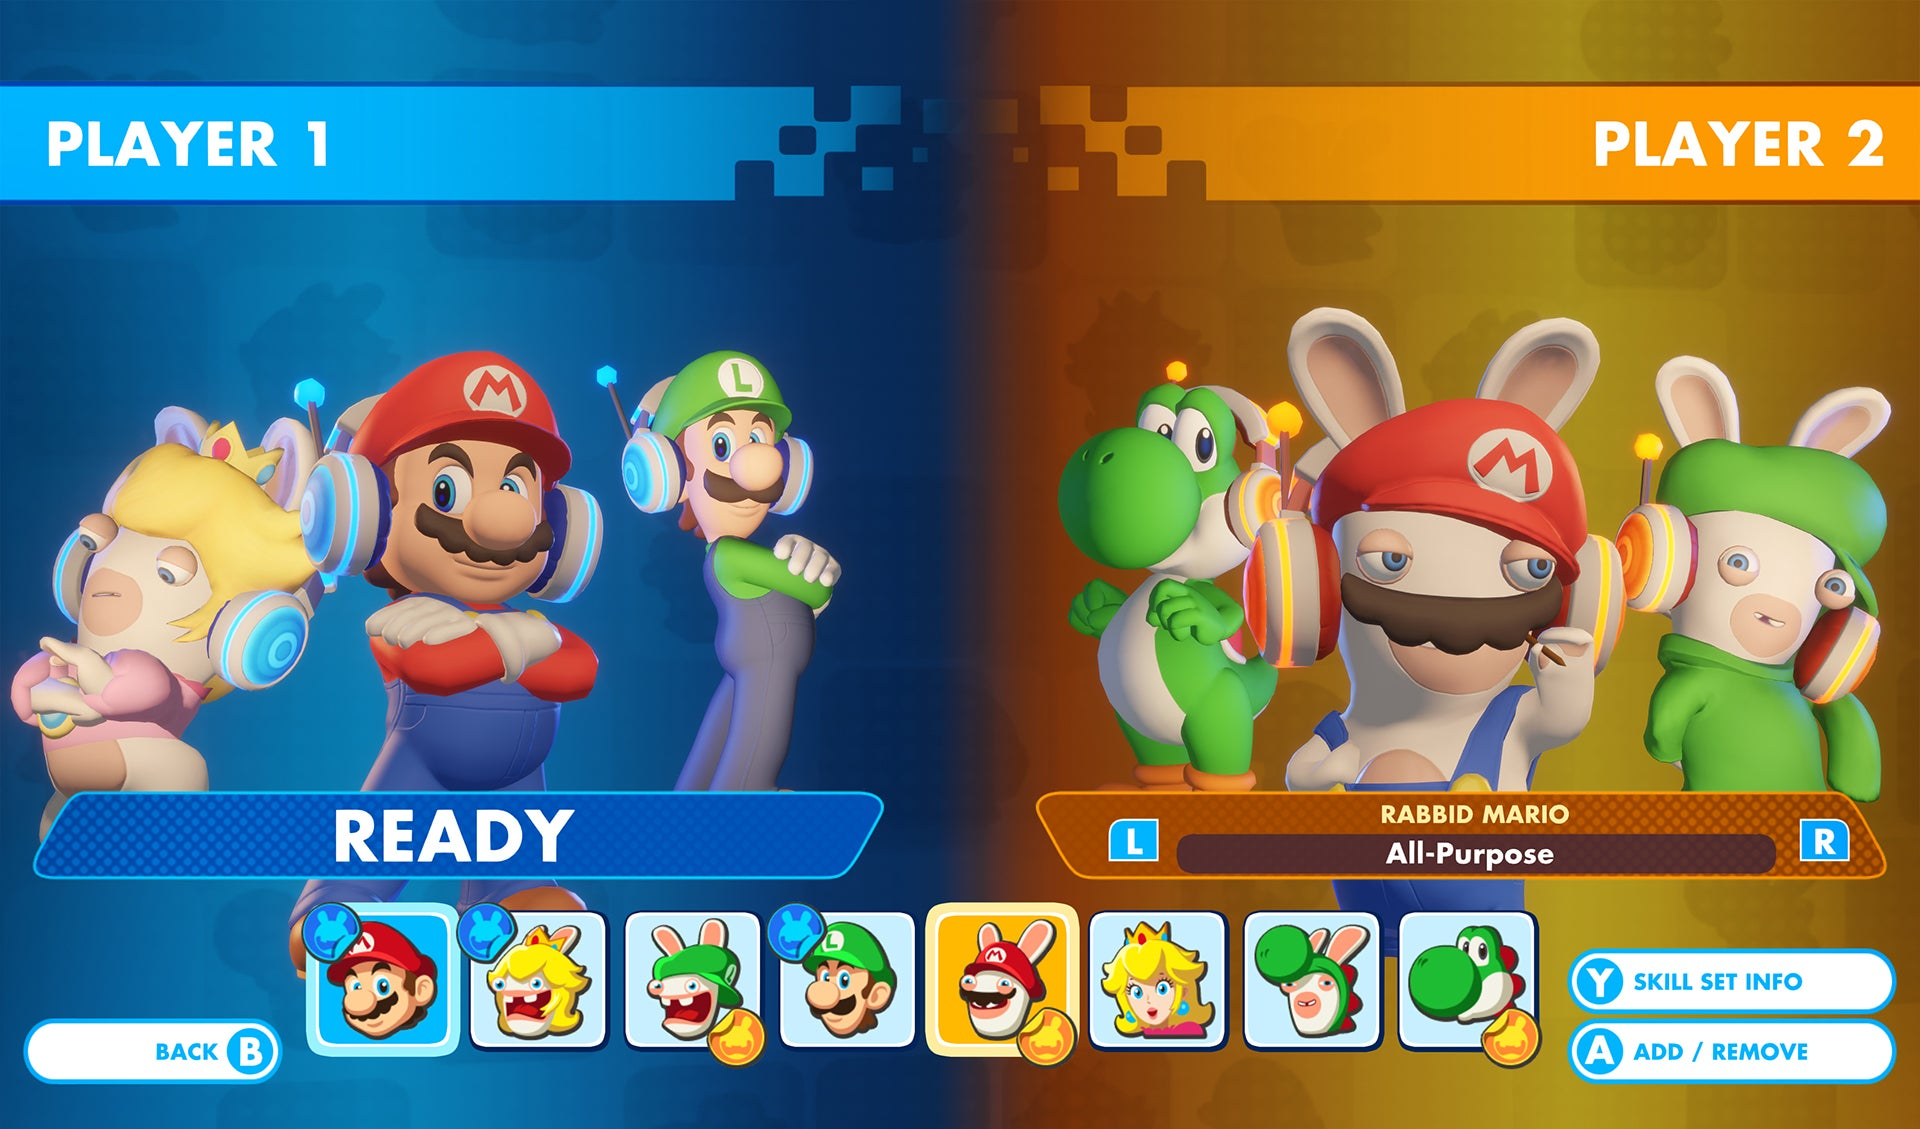 Mario + Rabbids Kingdom Battle is getting a two-player versus mode